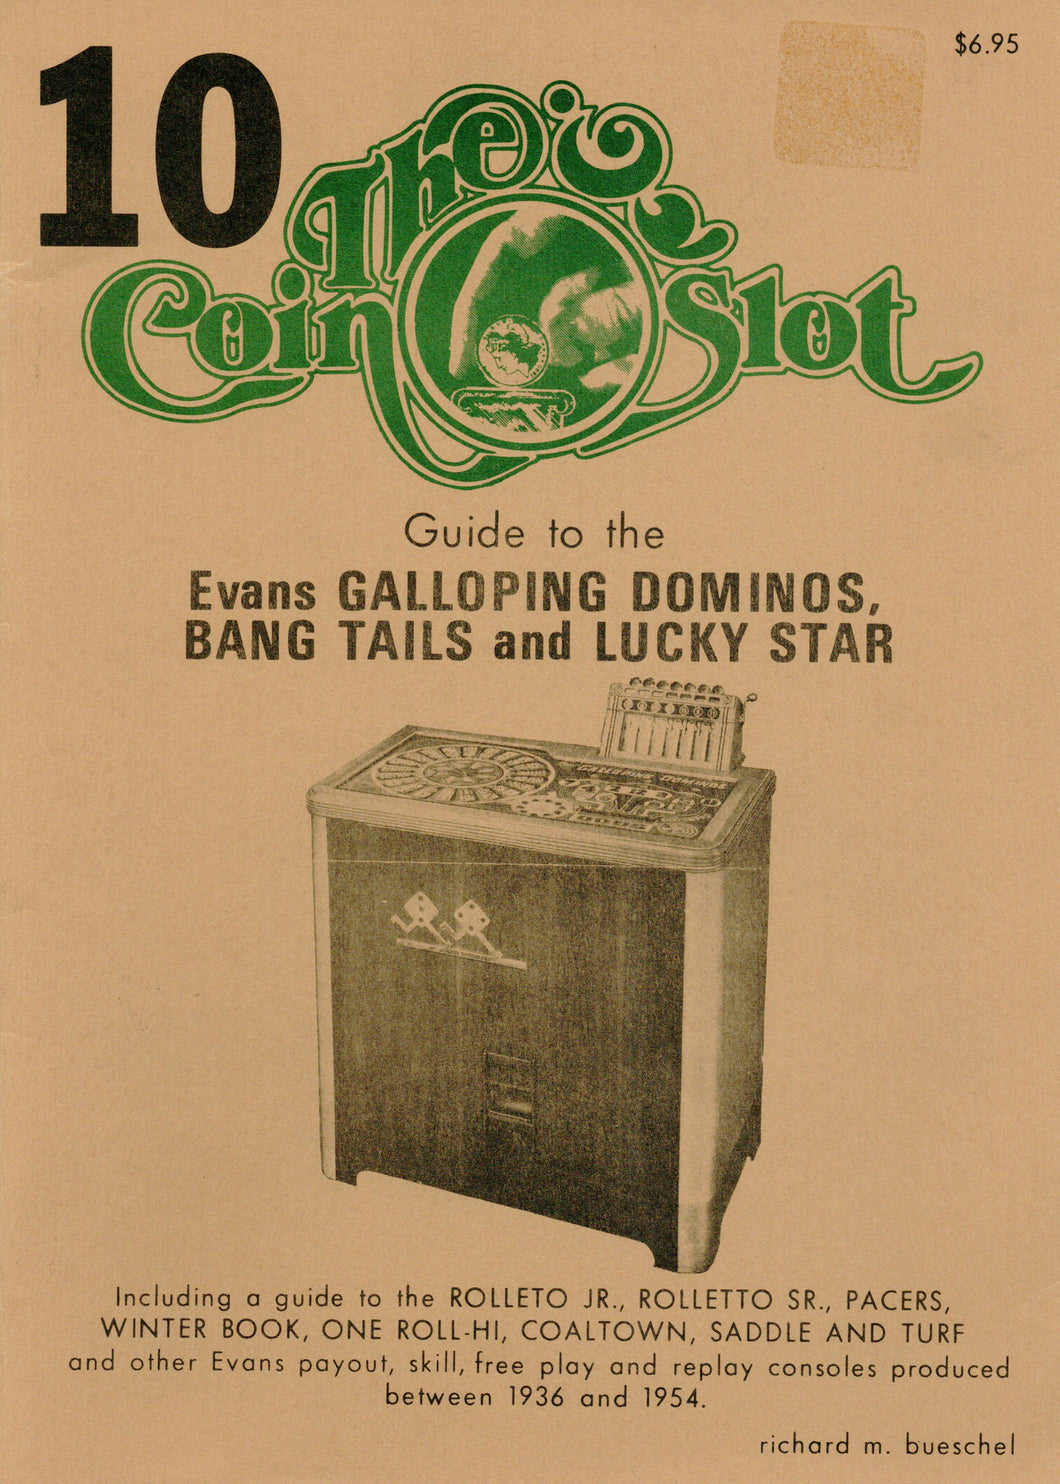 Coin Slot #10. Guide to the Evans Galloping Dominos, Bang Tails and Lucky Star